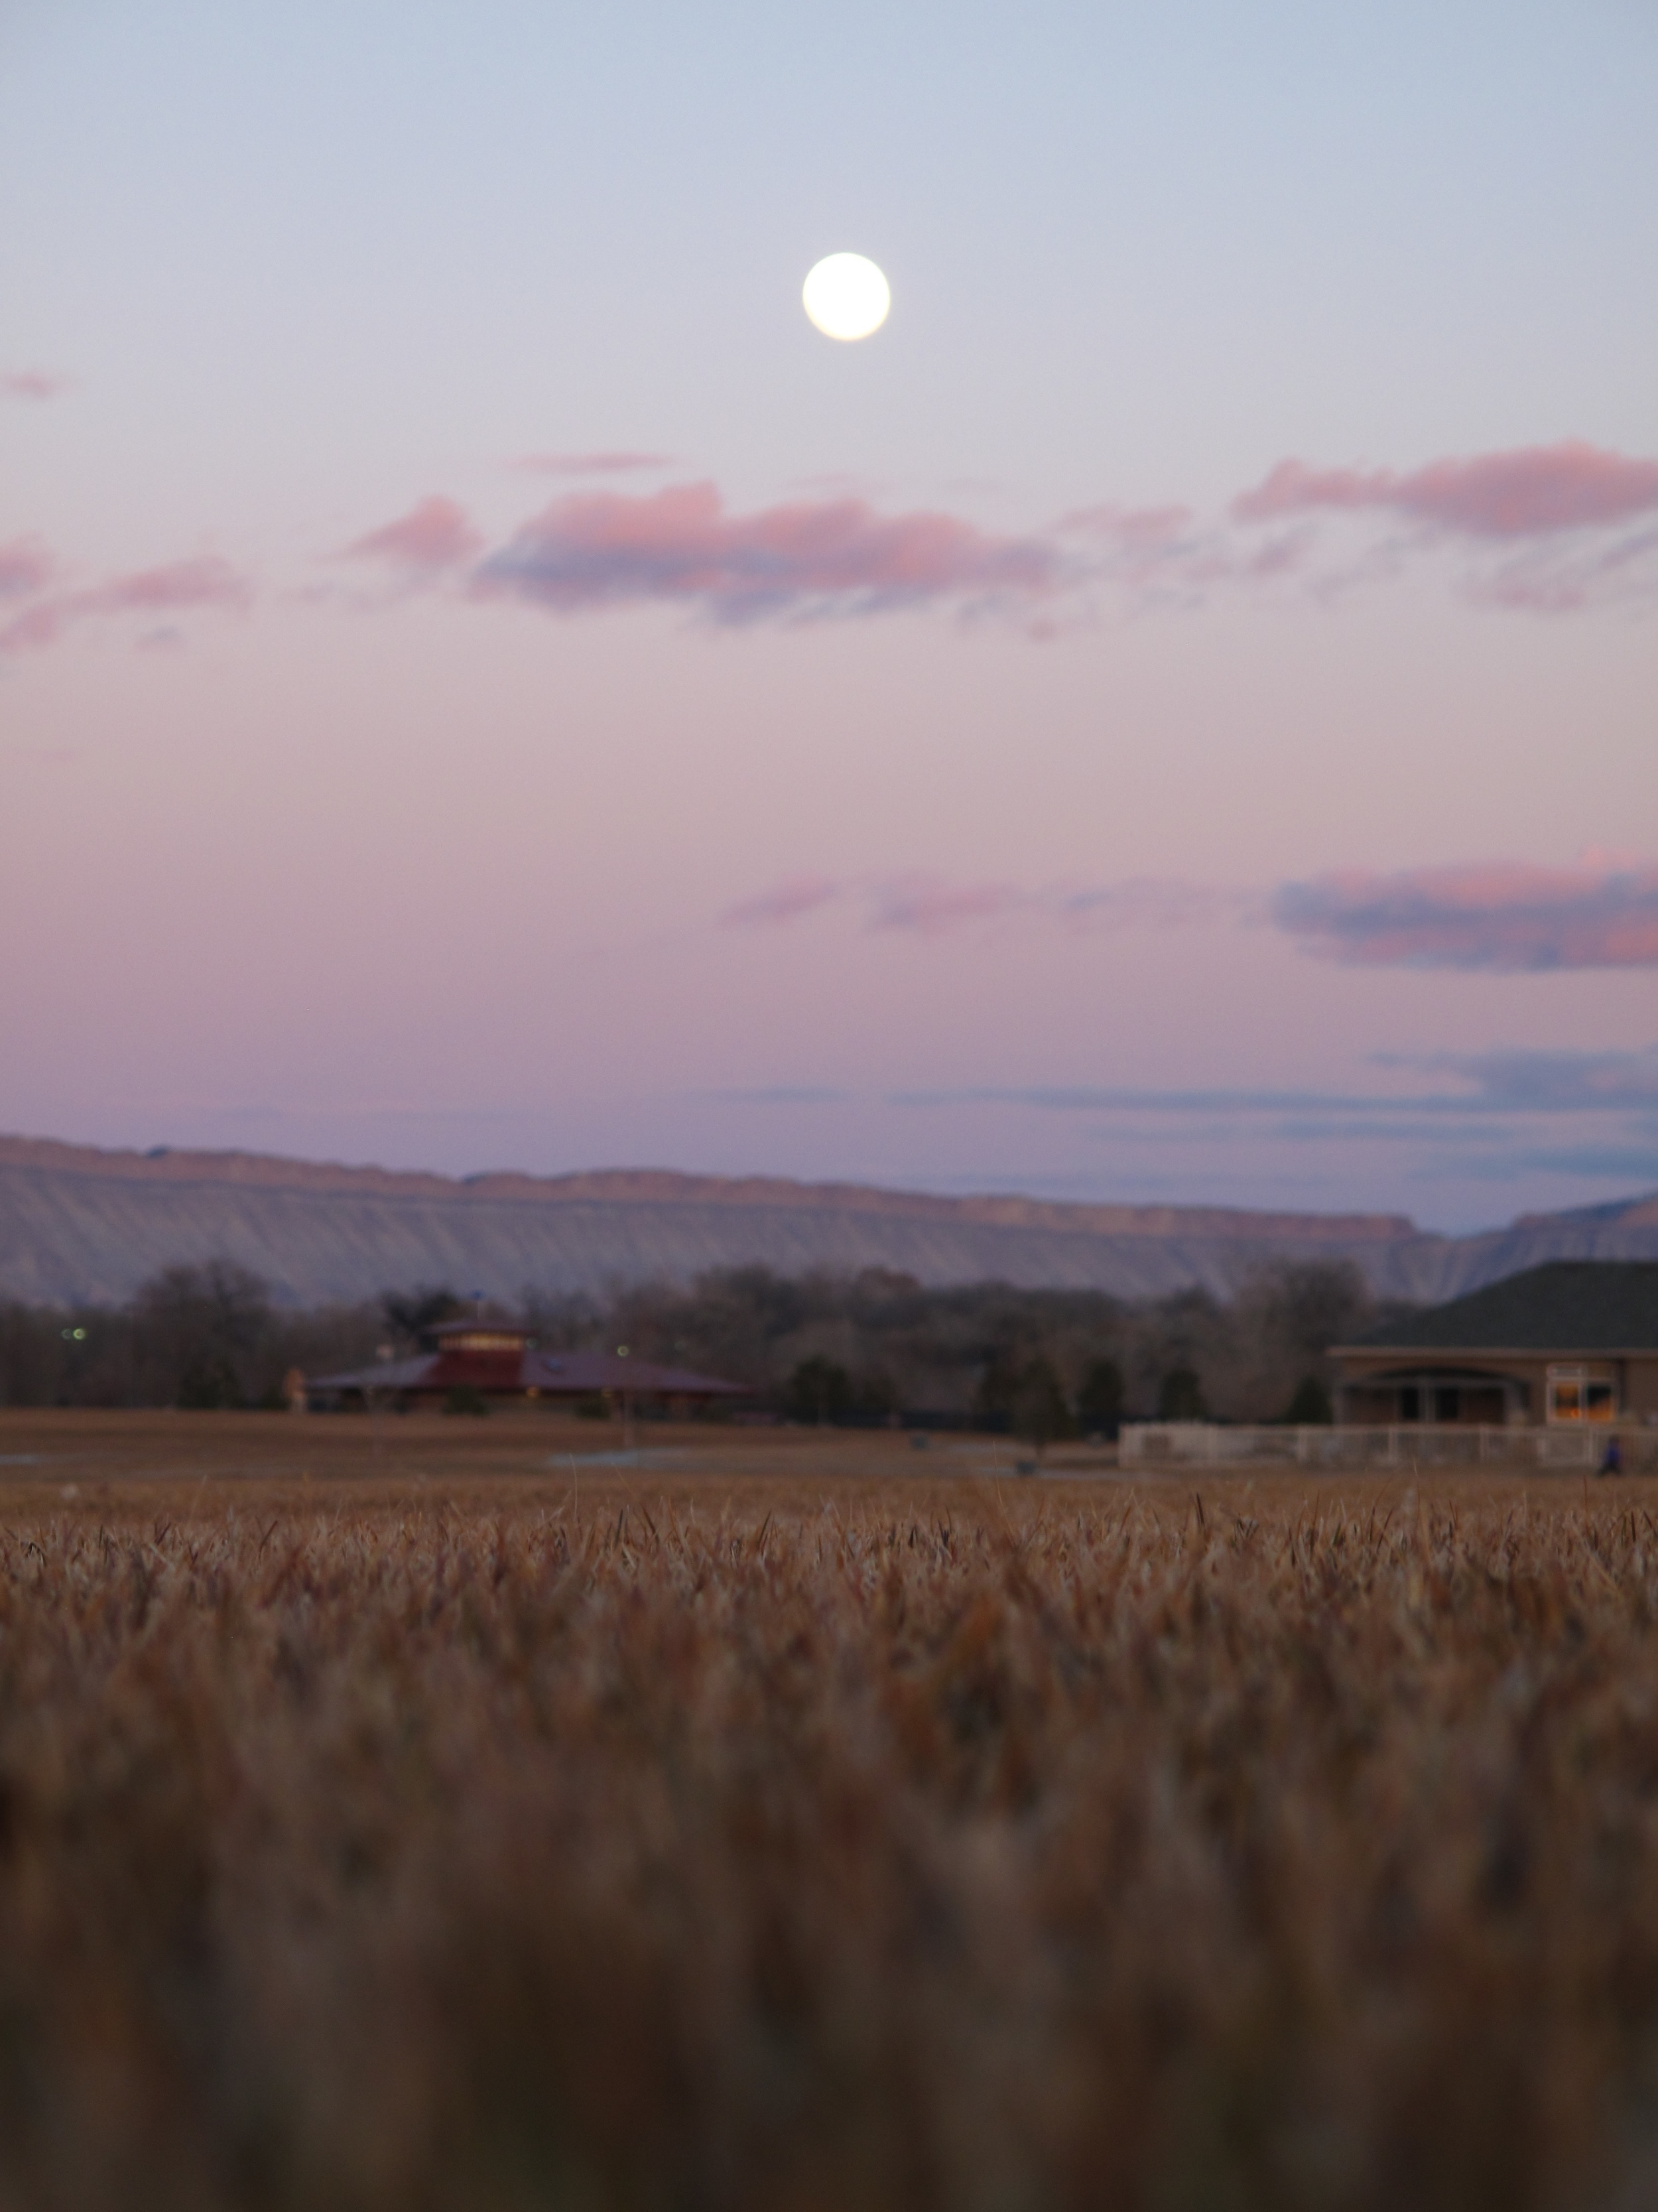 Full moon and purple sunset in Grand Junction, Colorado.